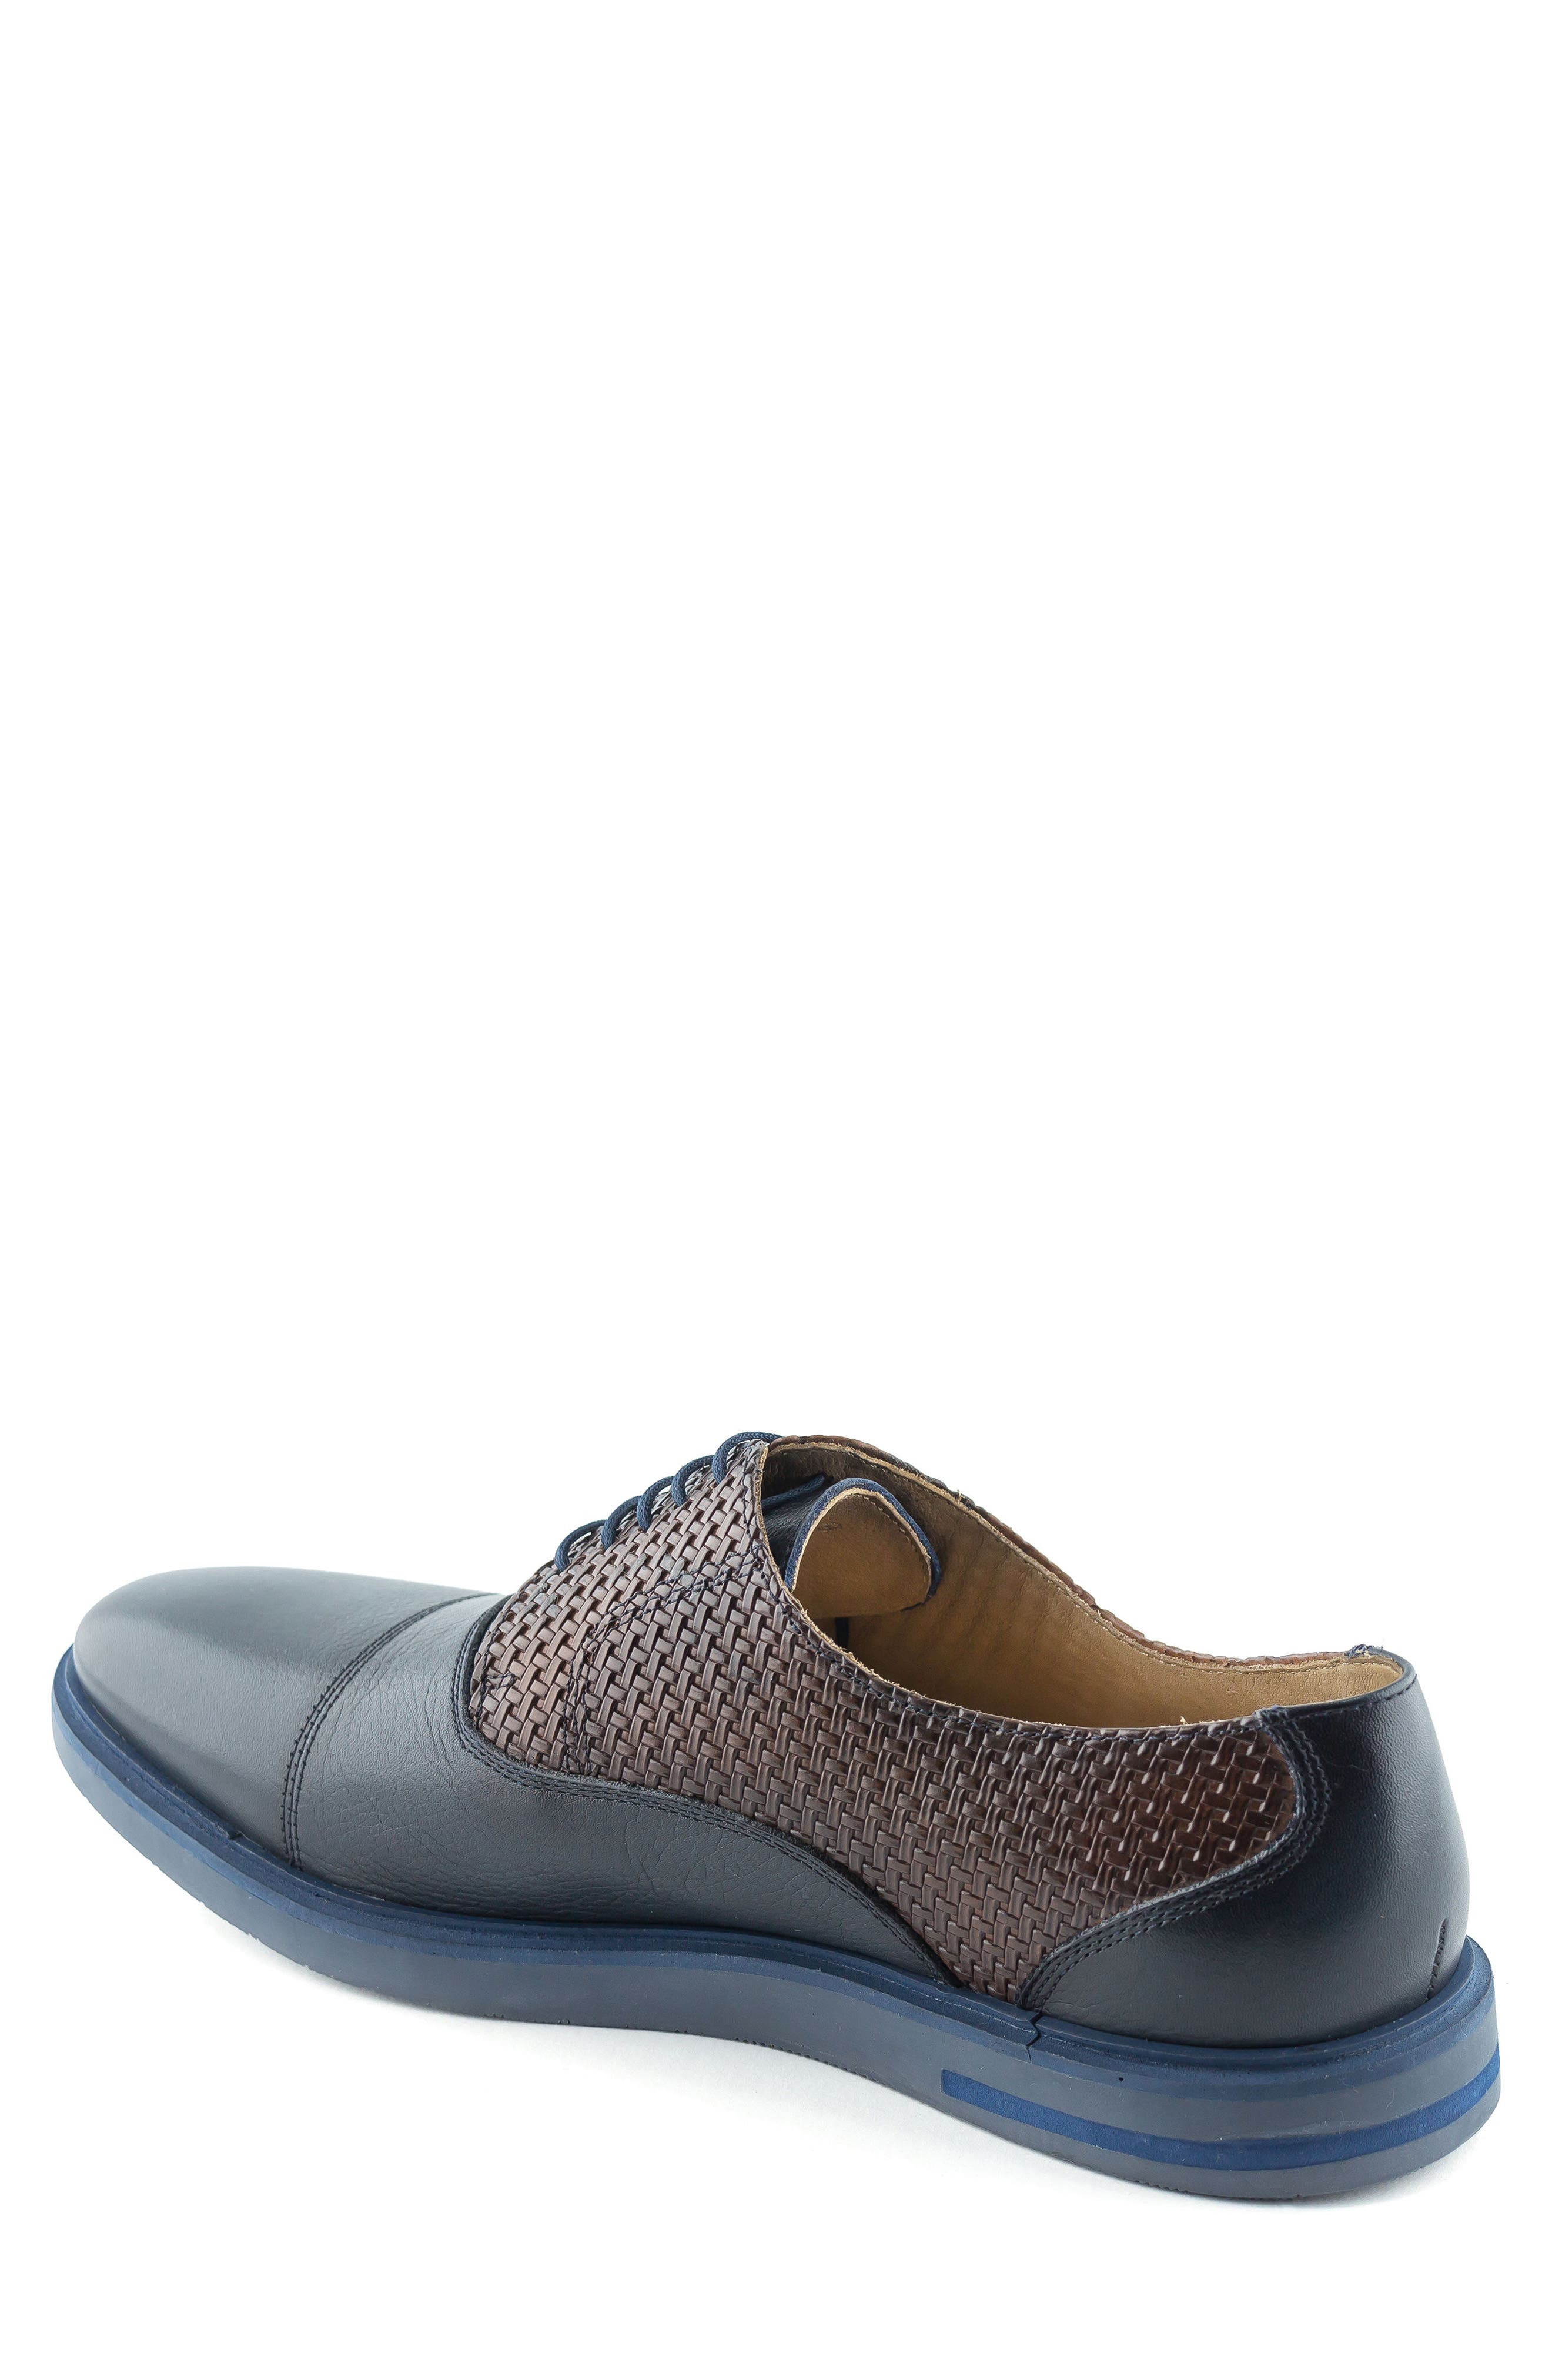 Manhattan Cap Toe Oxford,                             Alternate thumbnail 2, color,                             Navy Leather